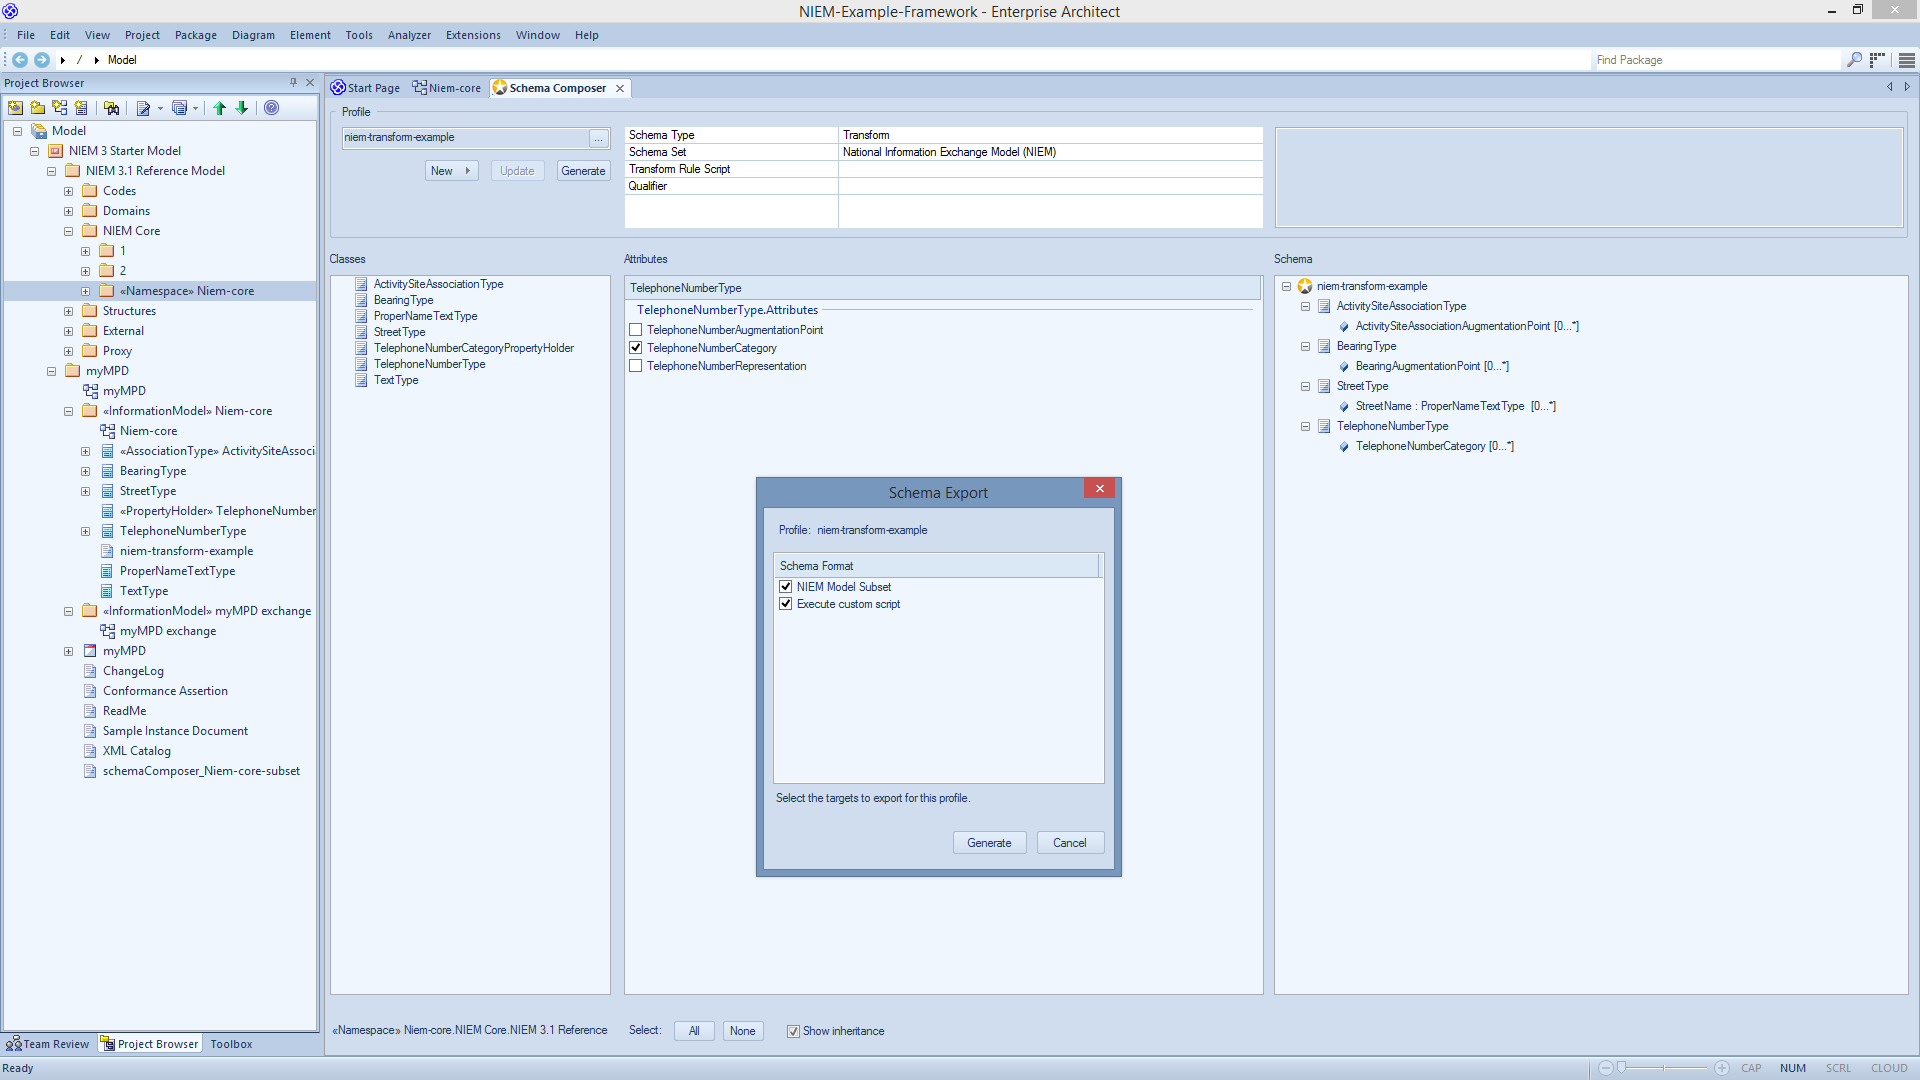 NIEM 3.1 Framework and Schema Composer